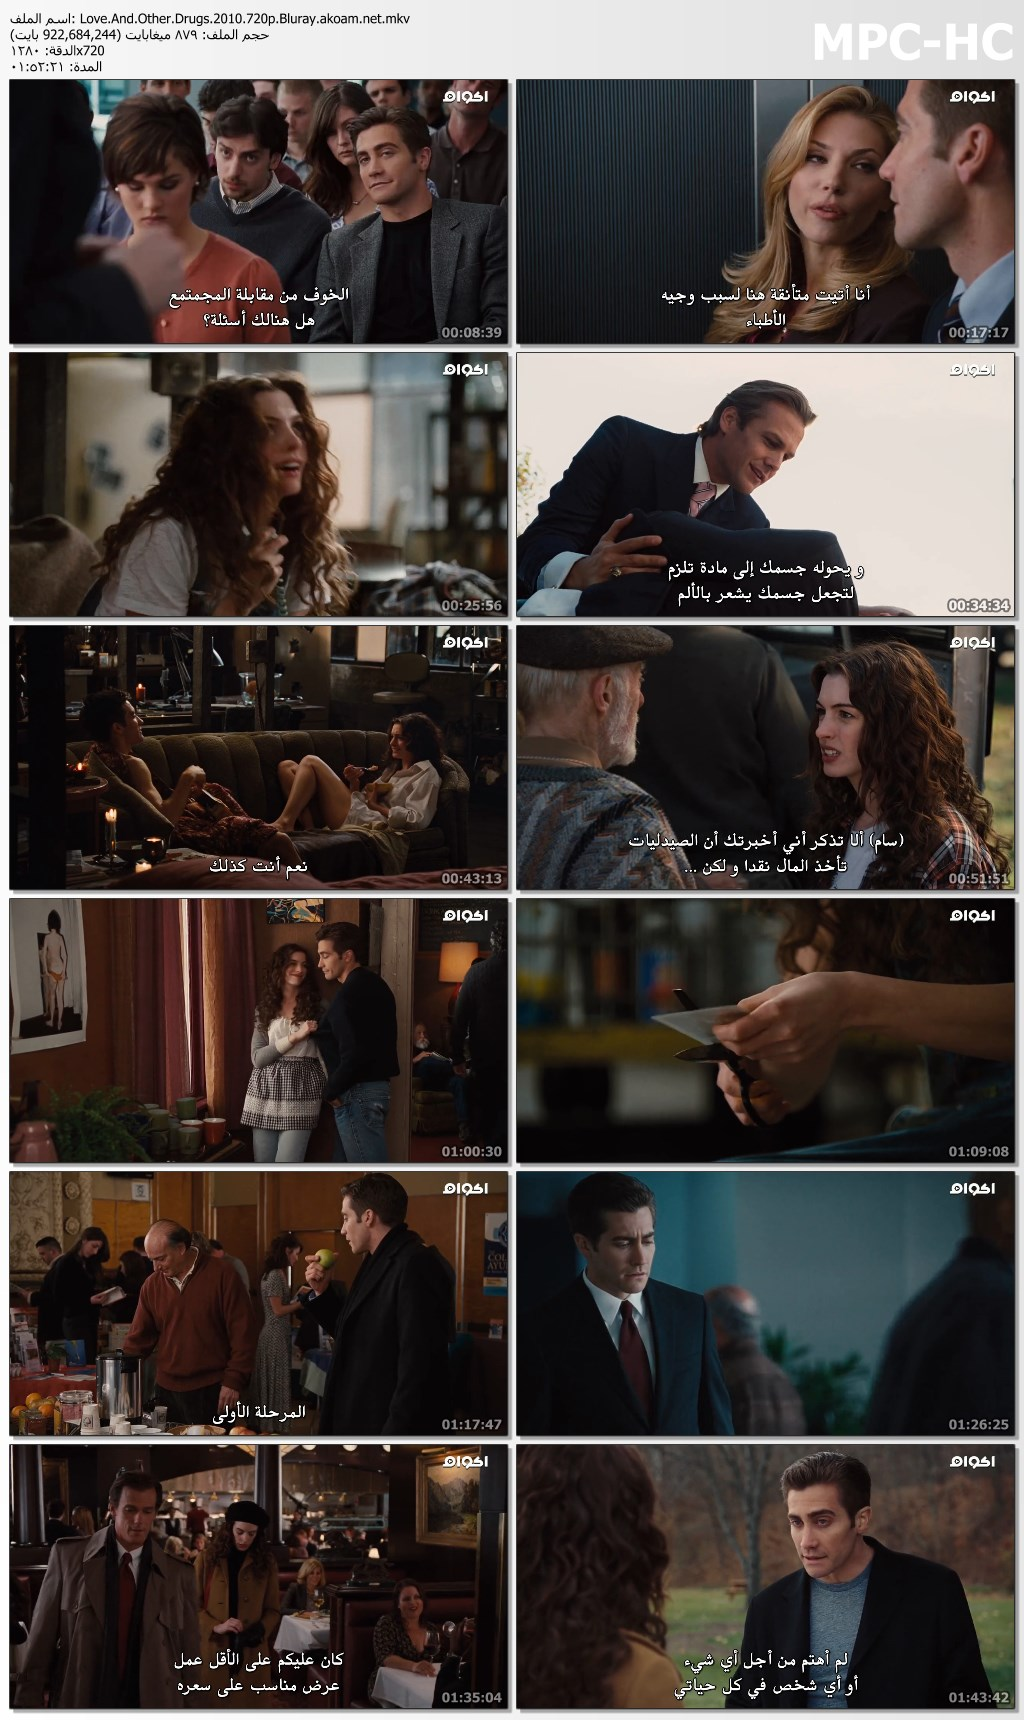 Love & Other Drugs,Love & Other Drugs 2010